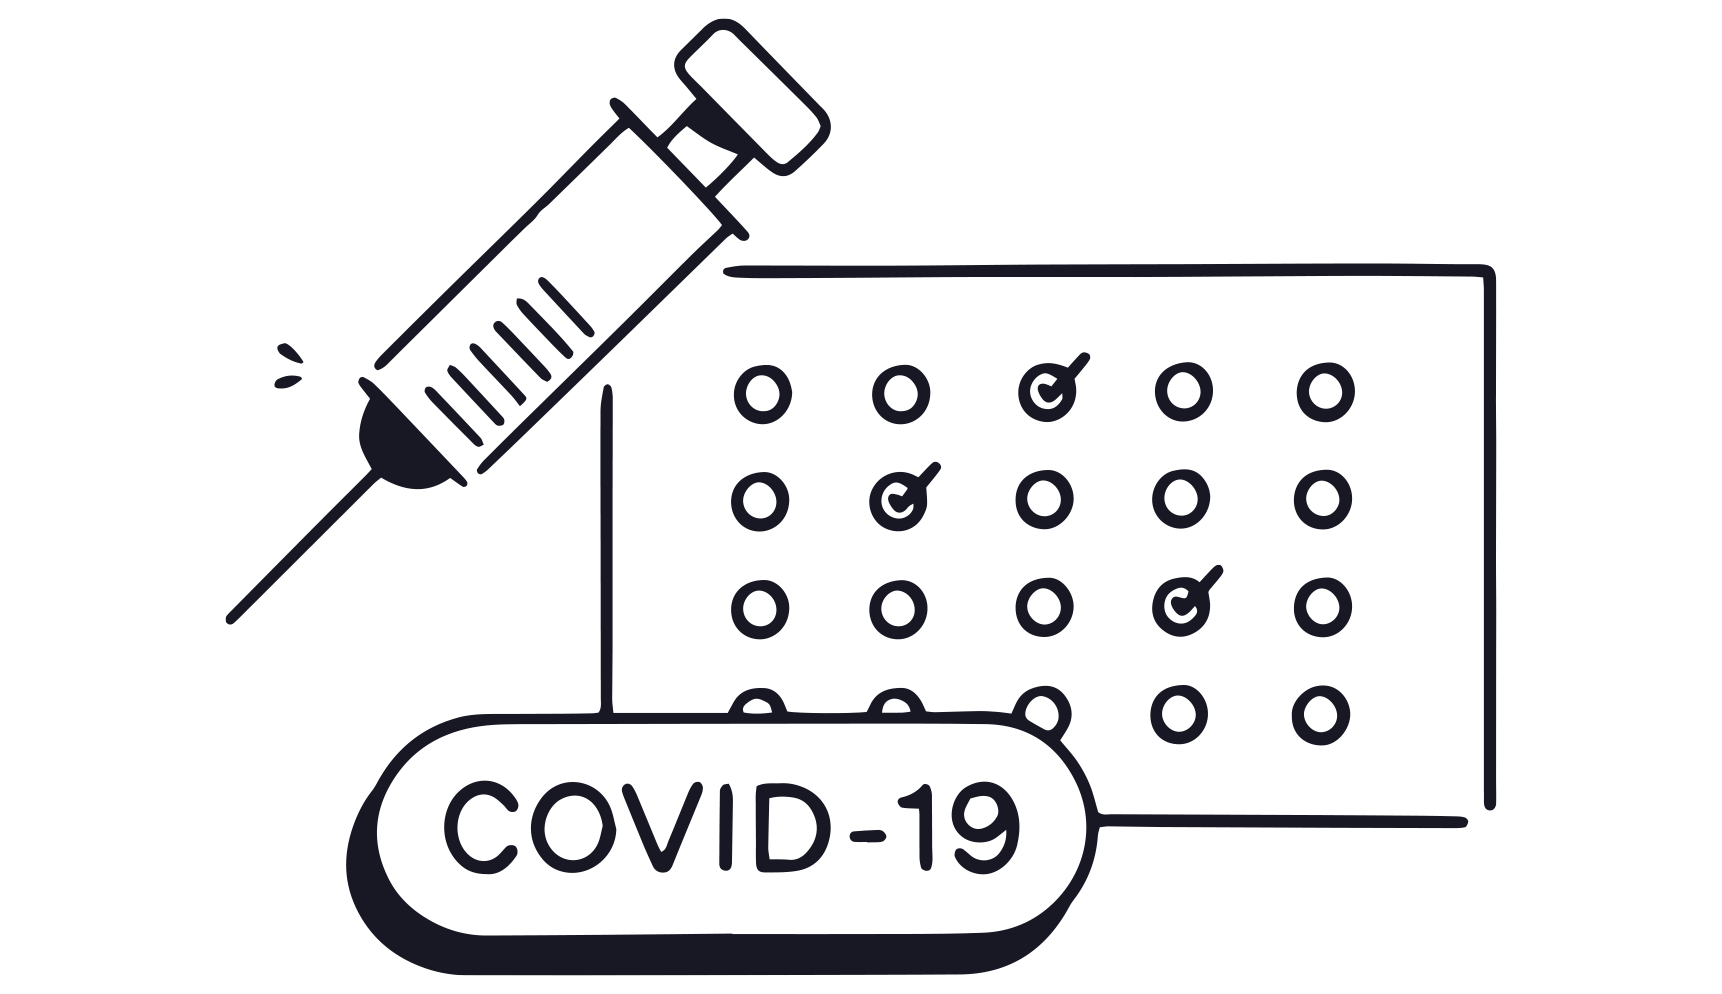 COVID-19 Vaccine Management Software by Pomelo Health